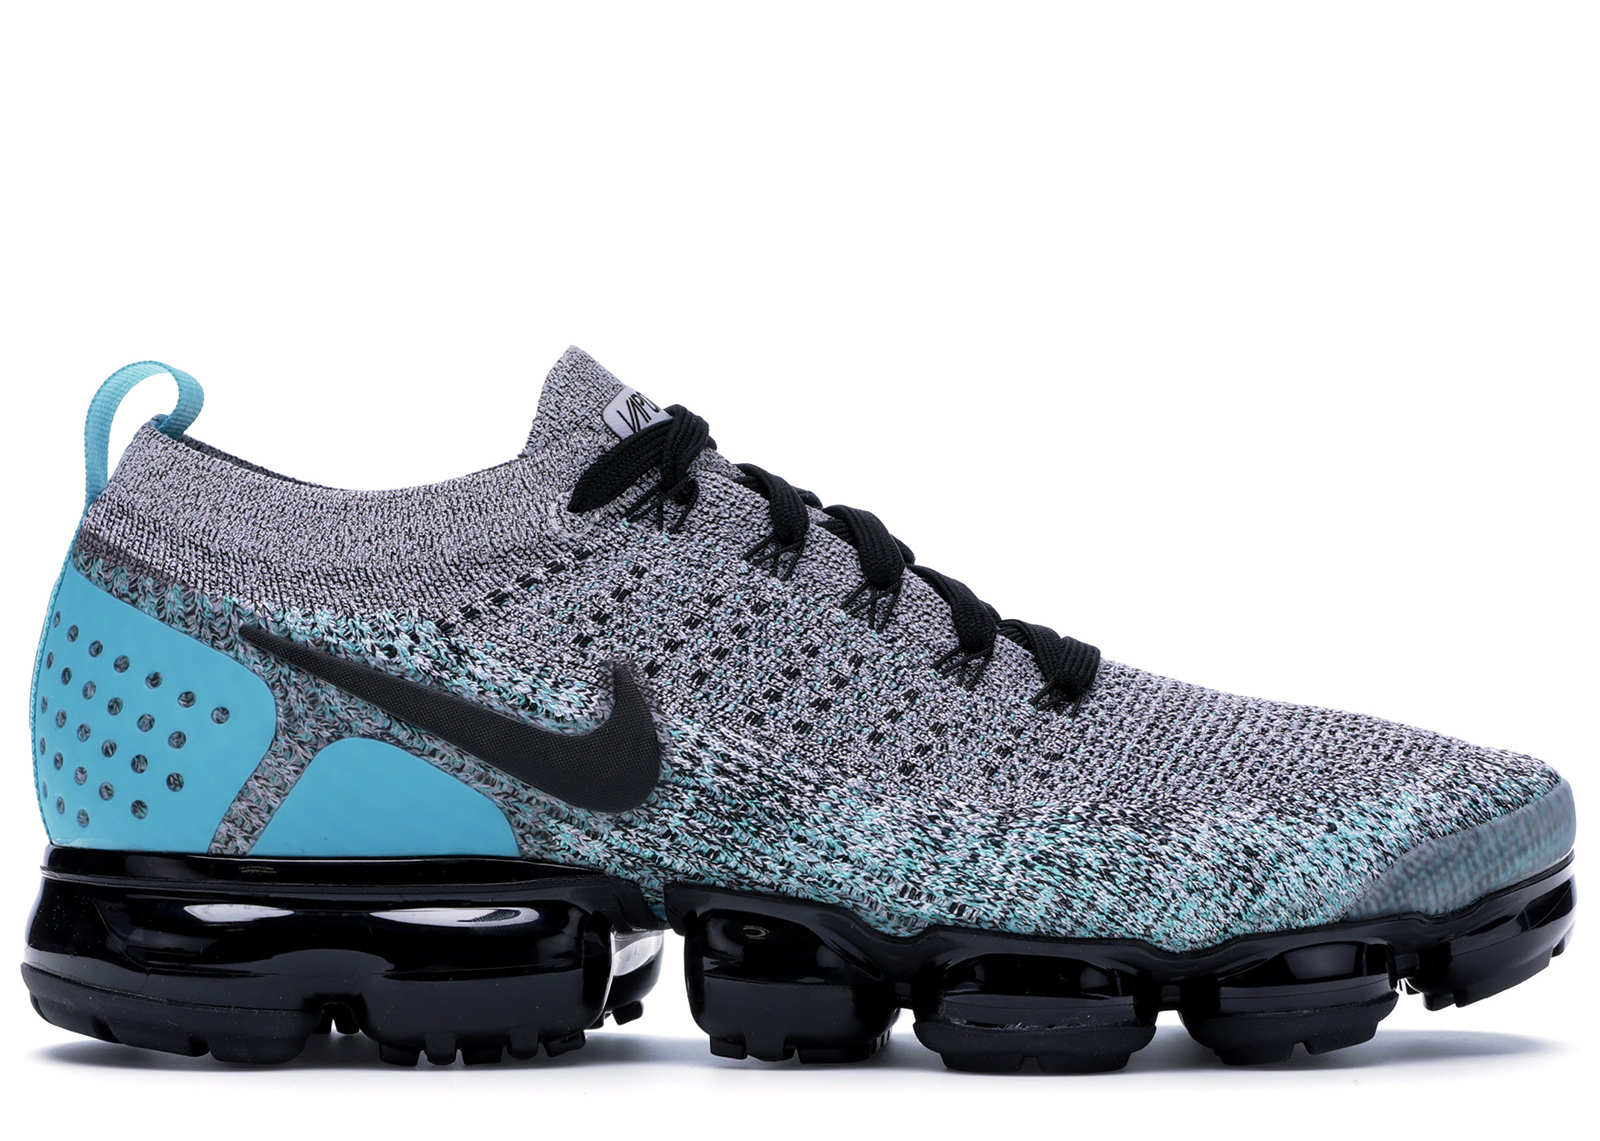 9fa7ba4be12 Nike-Air-VaporMax-2-Dusty-Cactus-Hyper-Jade-Product.jpg